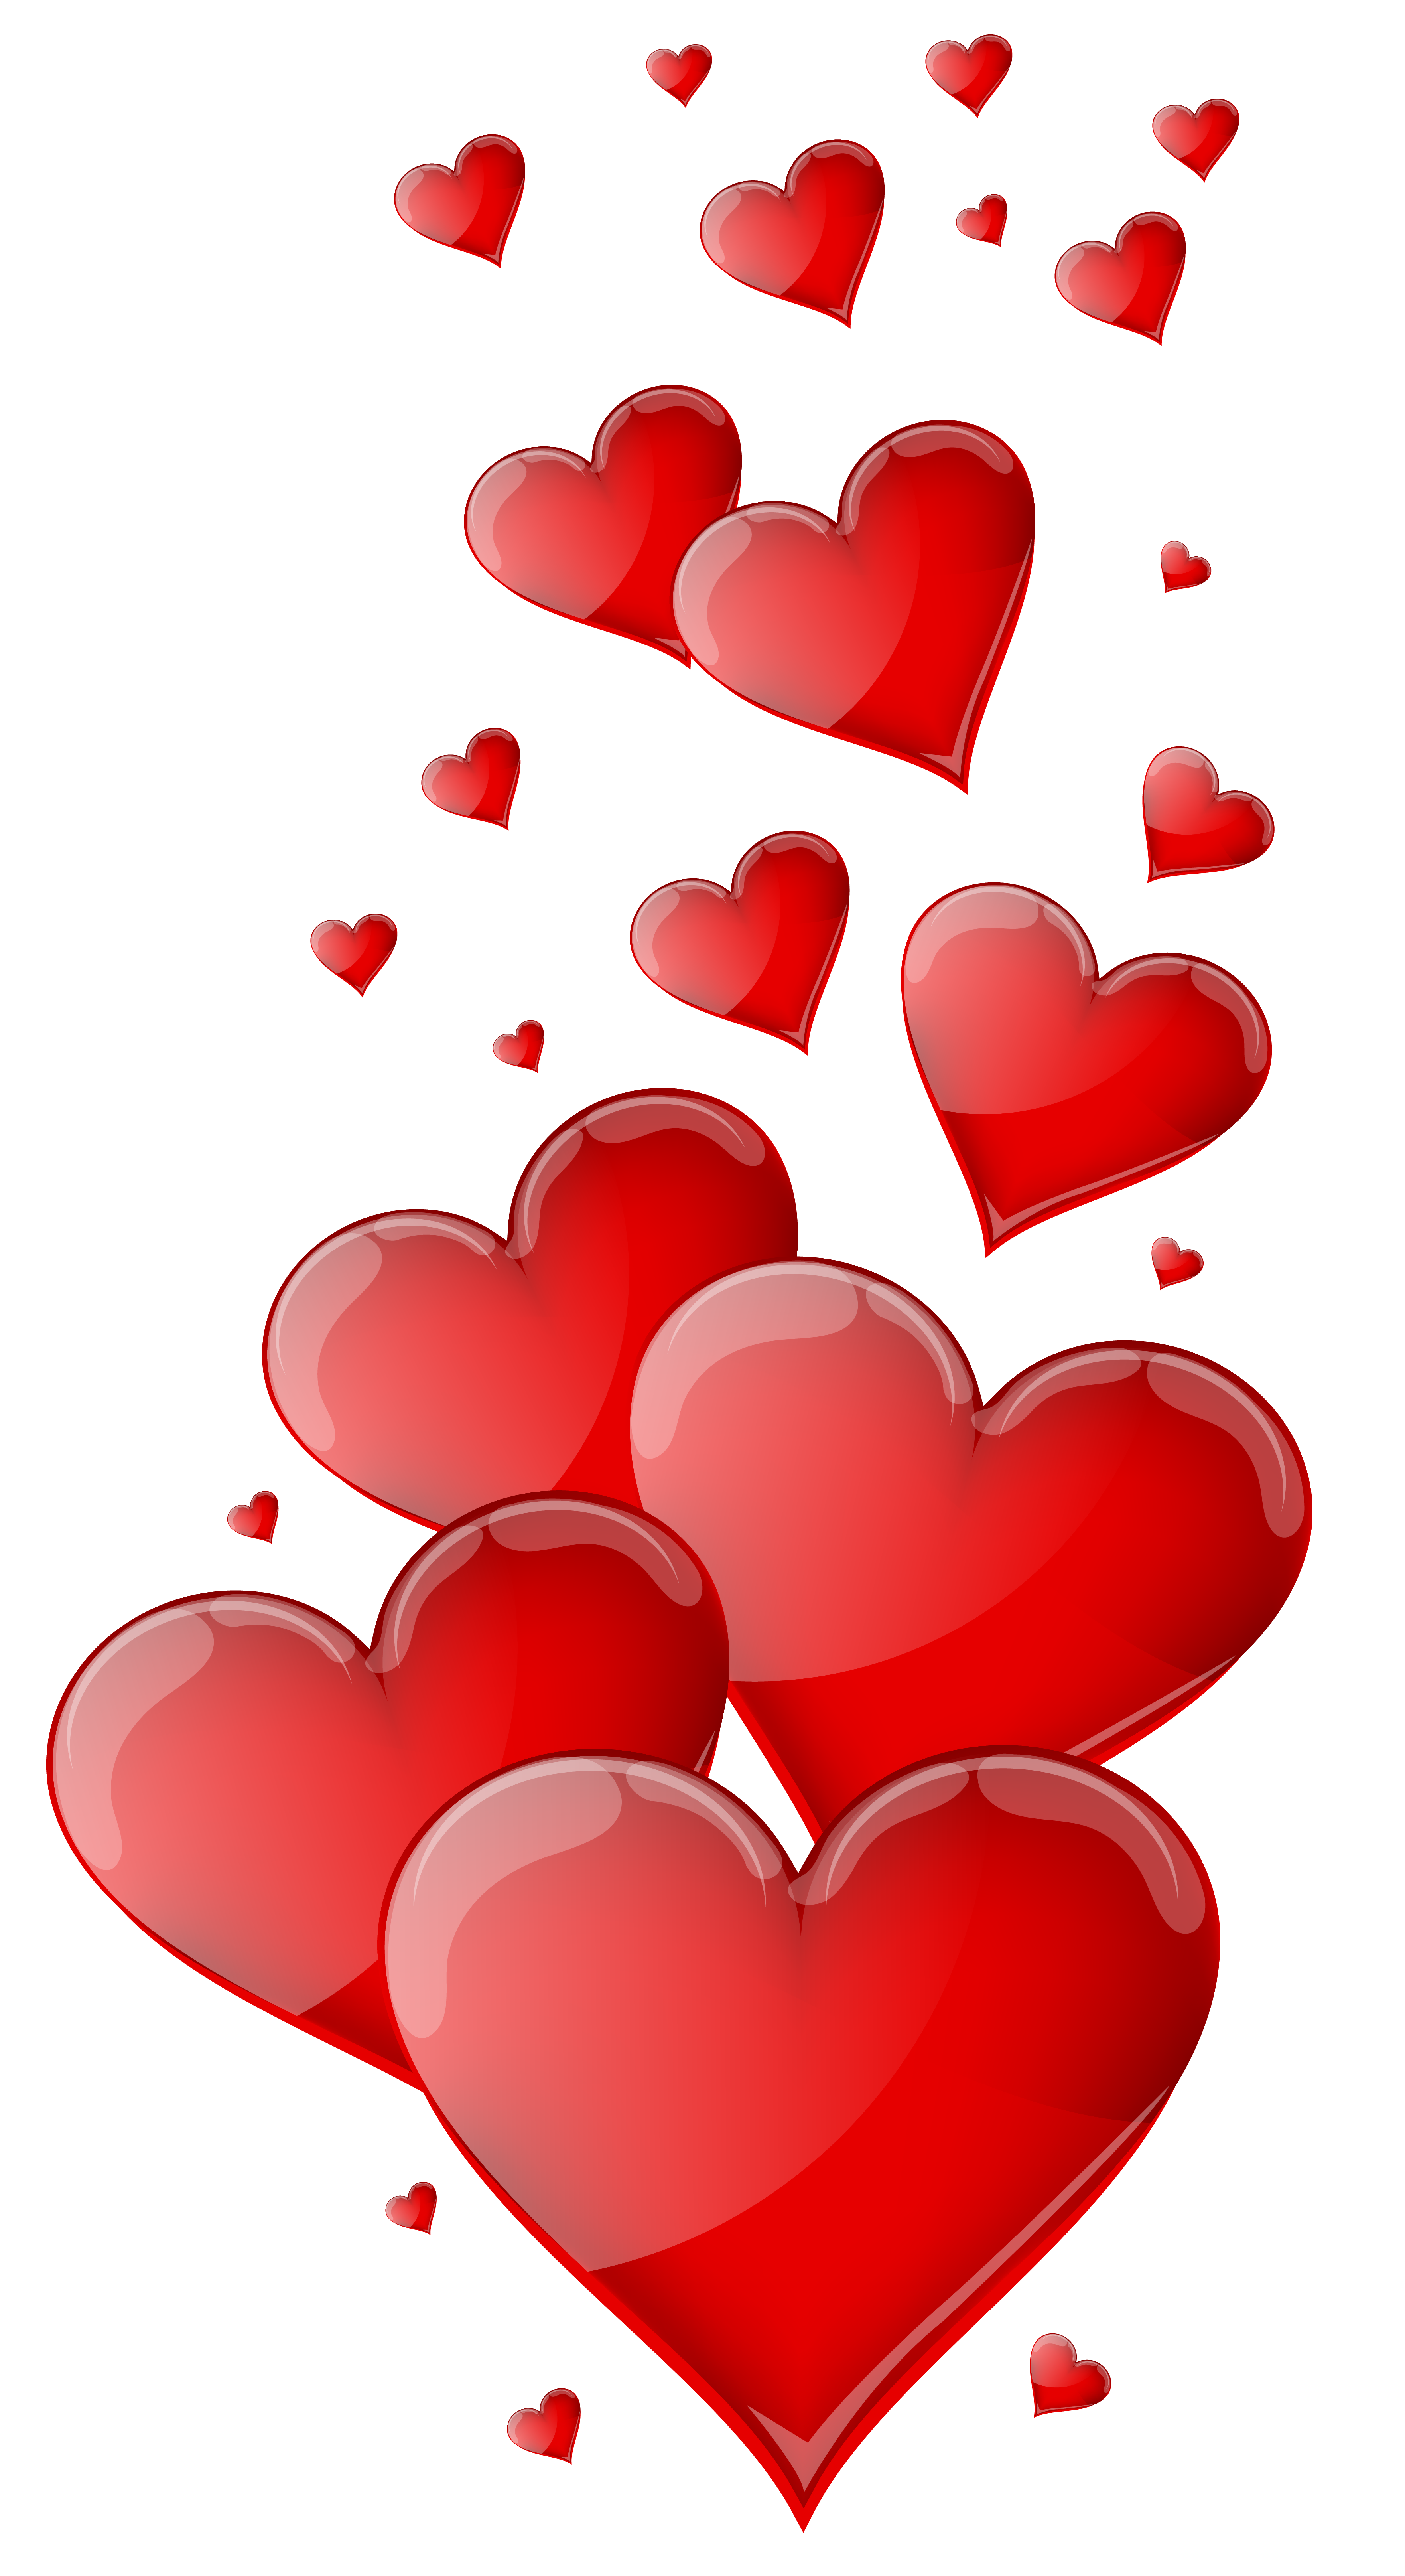 Red Hearts PNG Clipart Image.